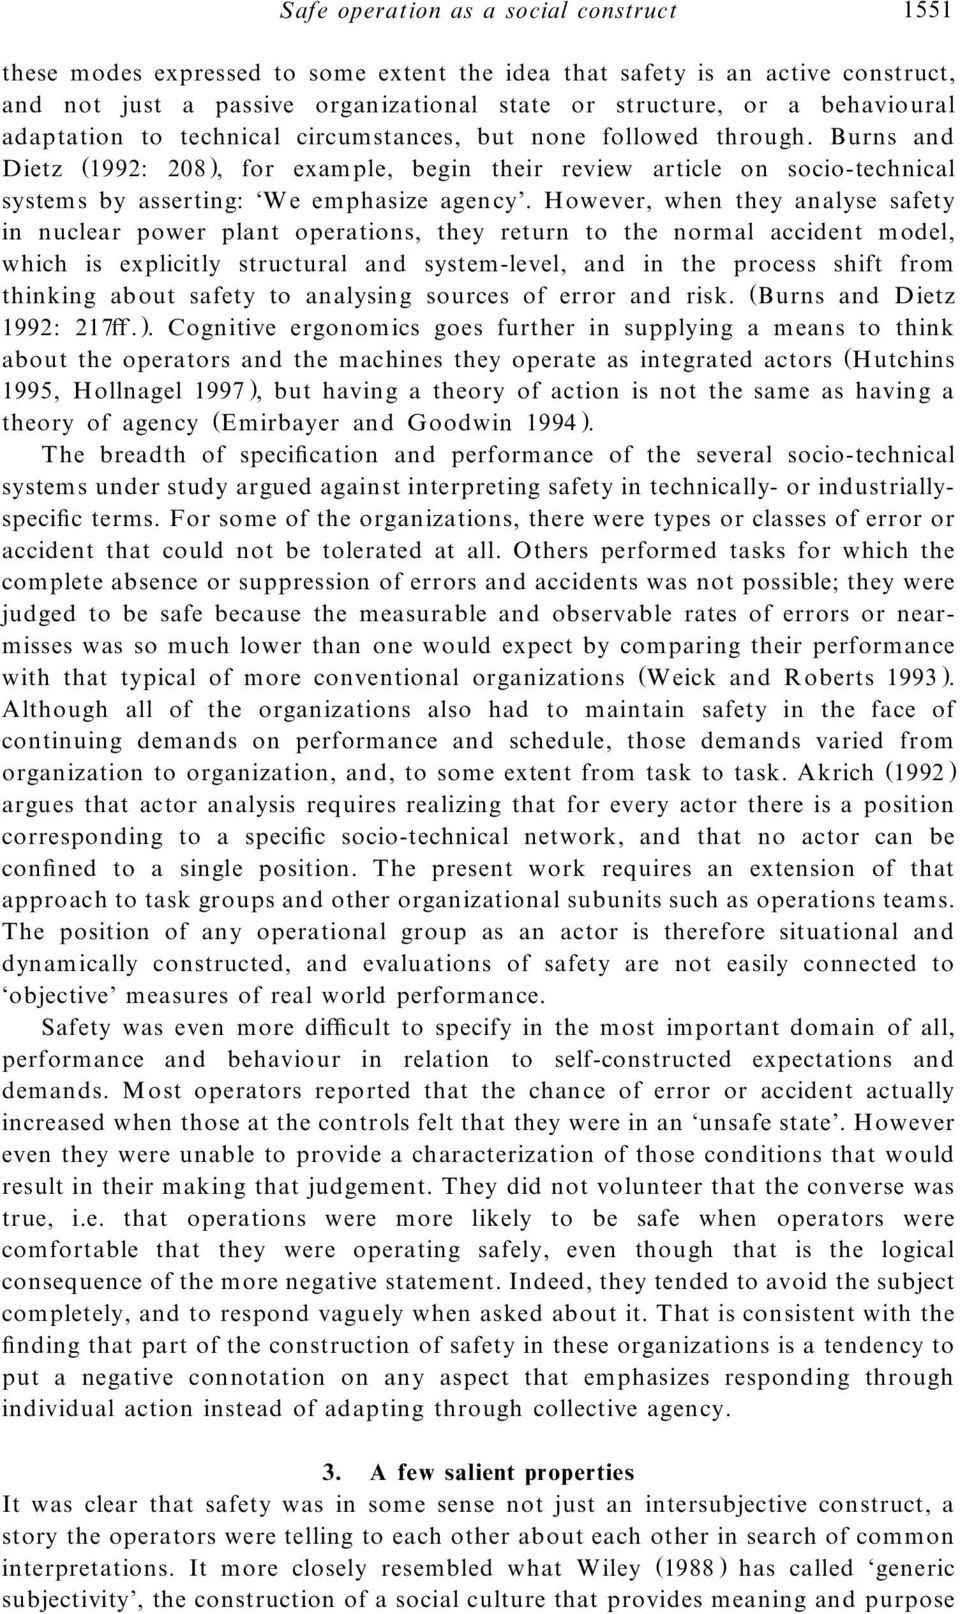 Burns and Dietz (1992: 208 ), for exam ple, begin their review article on socio-technical systems by asserting: `W e emphasize agen cy.